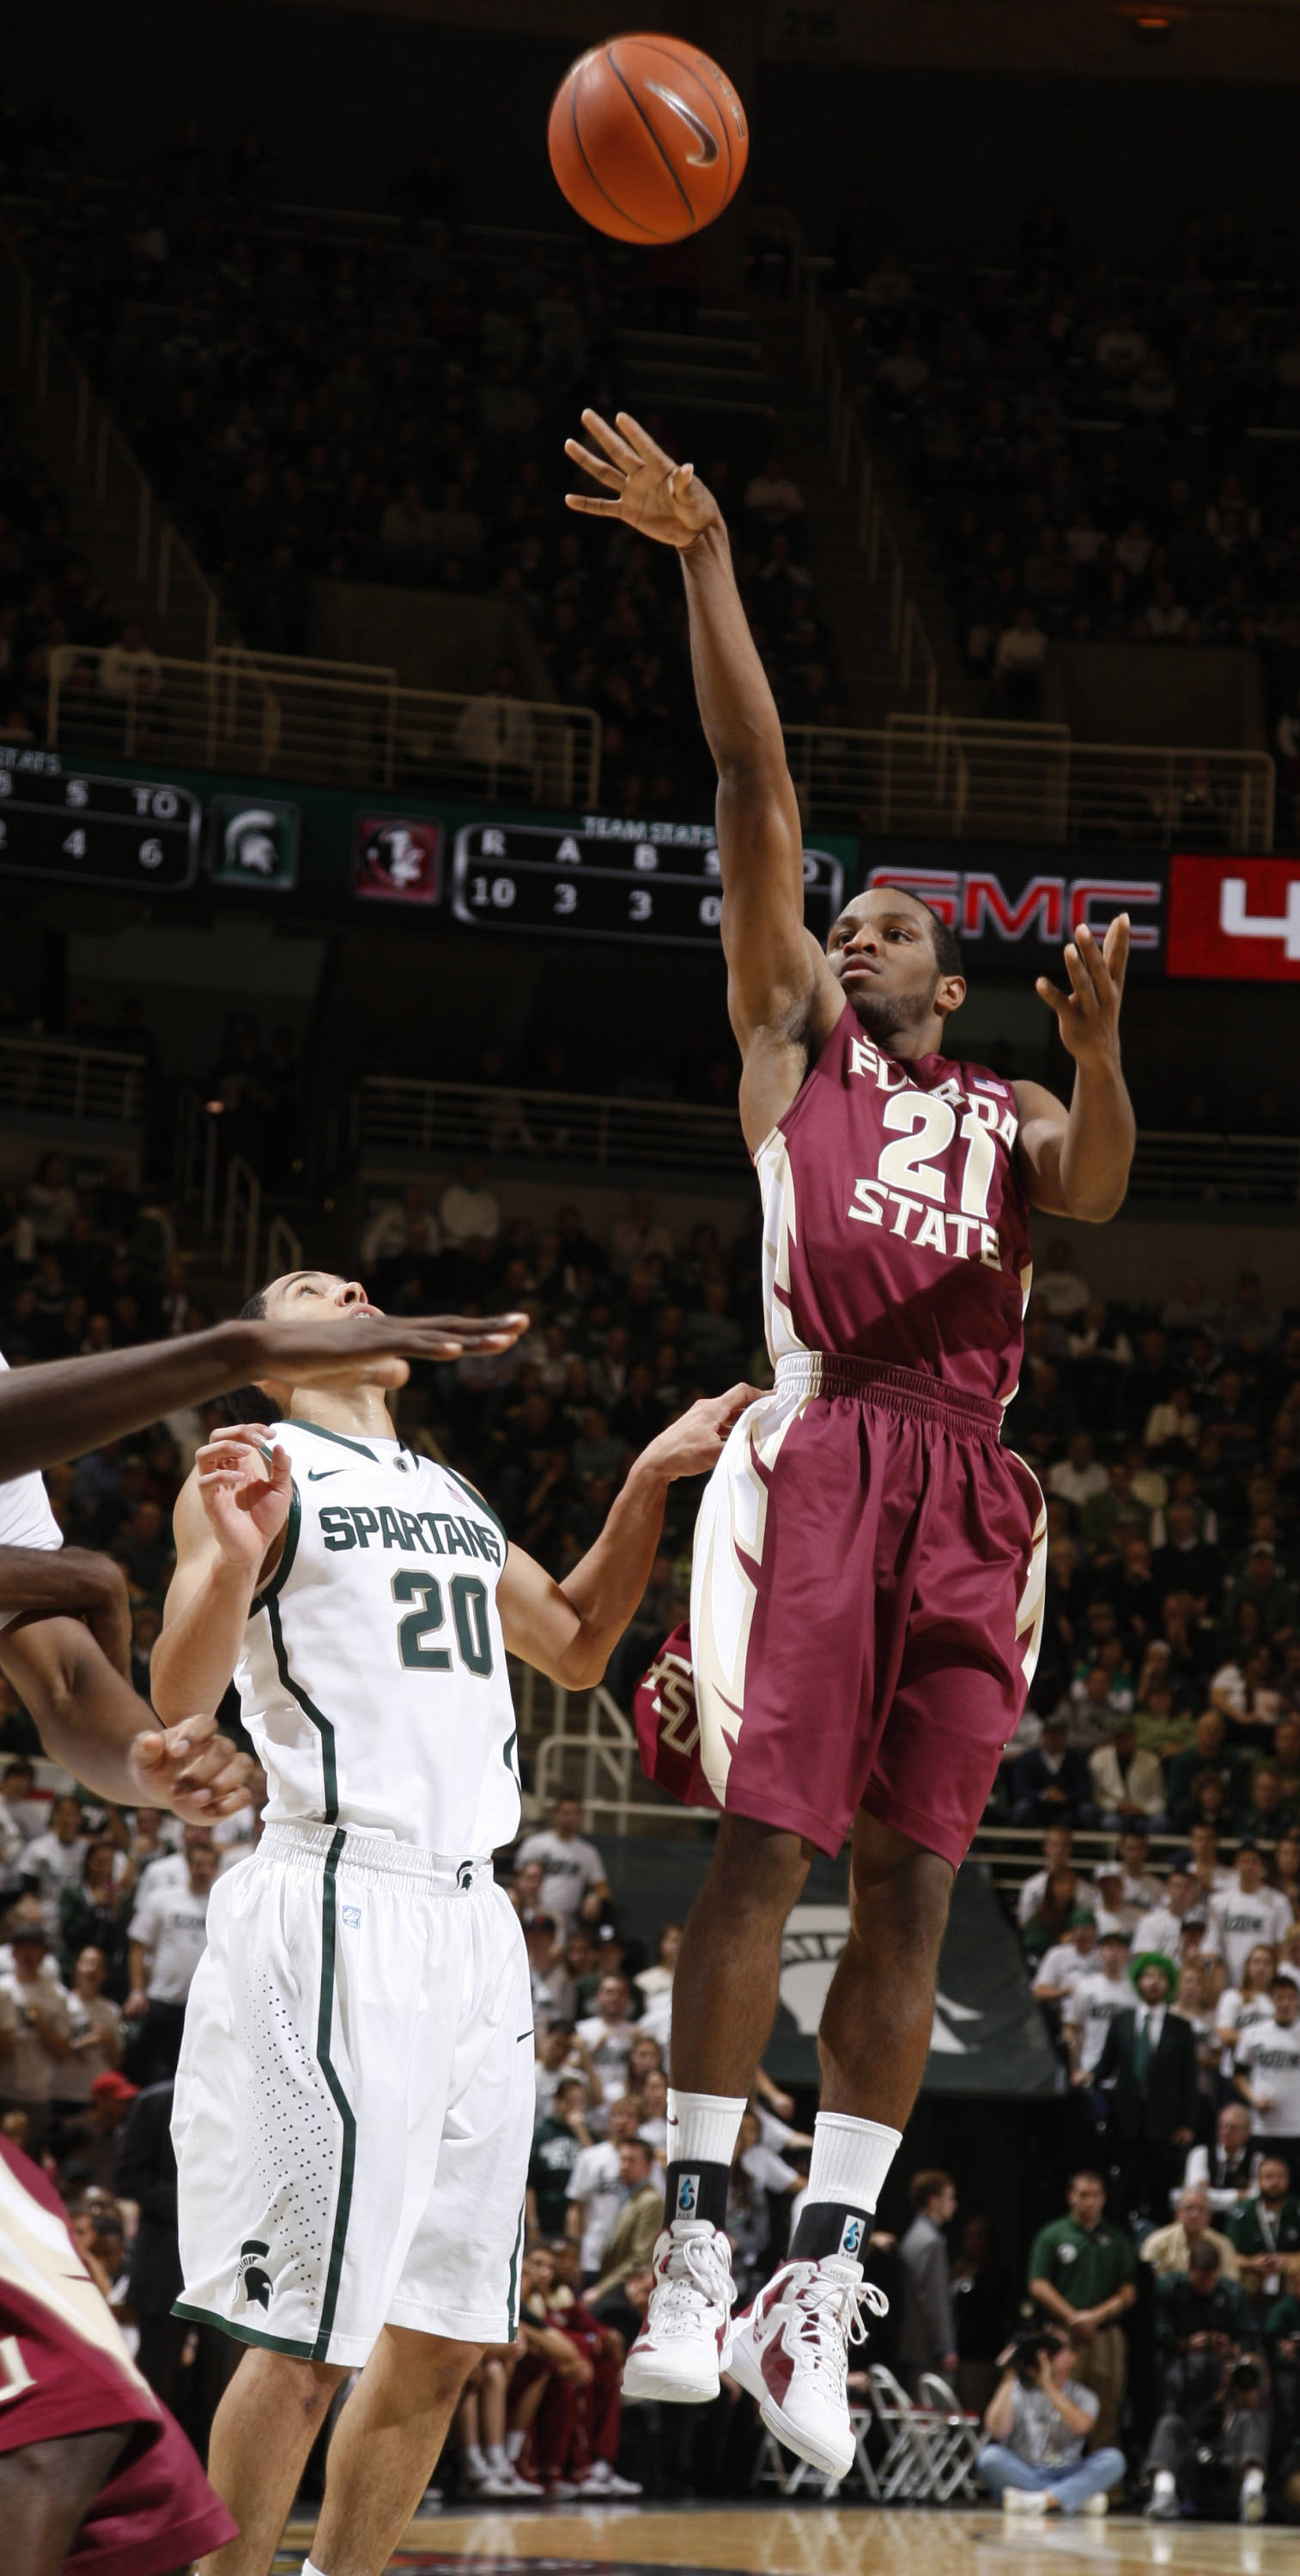 Florida State's Michael Snaer shoots over Michigan State's Travis Trice  during the first half. (AP Photo/Al Goldis)